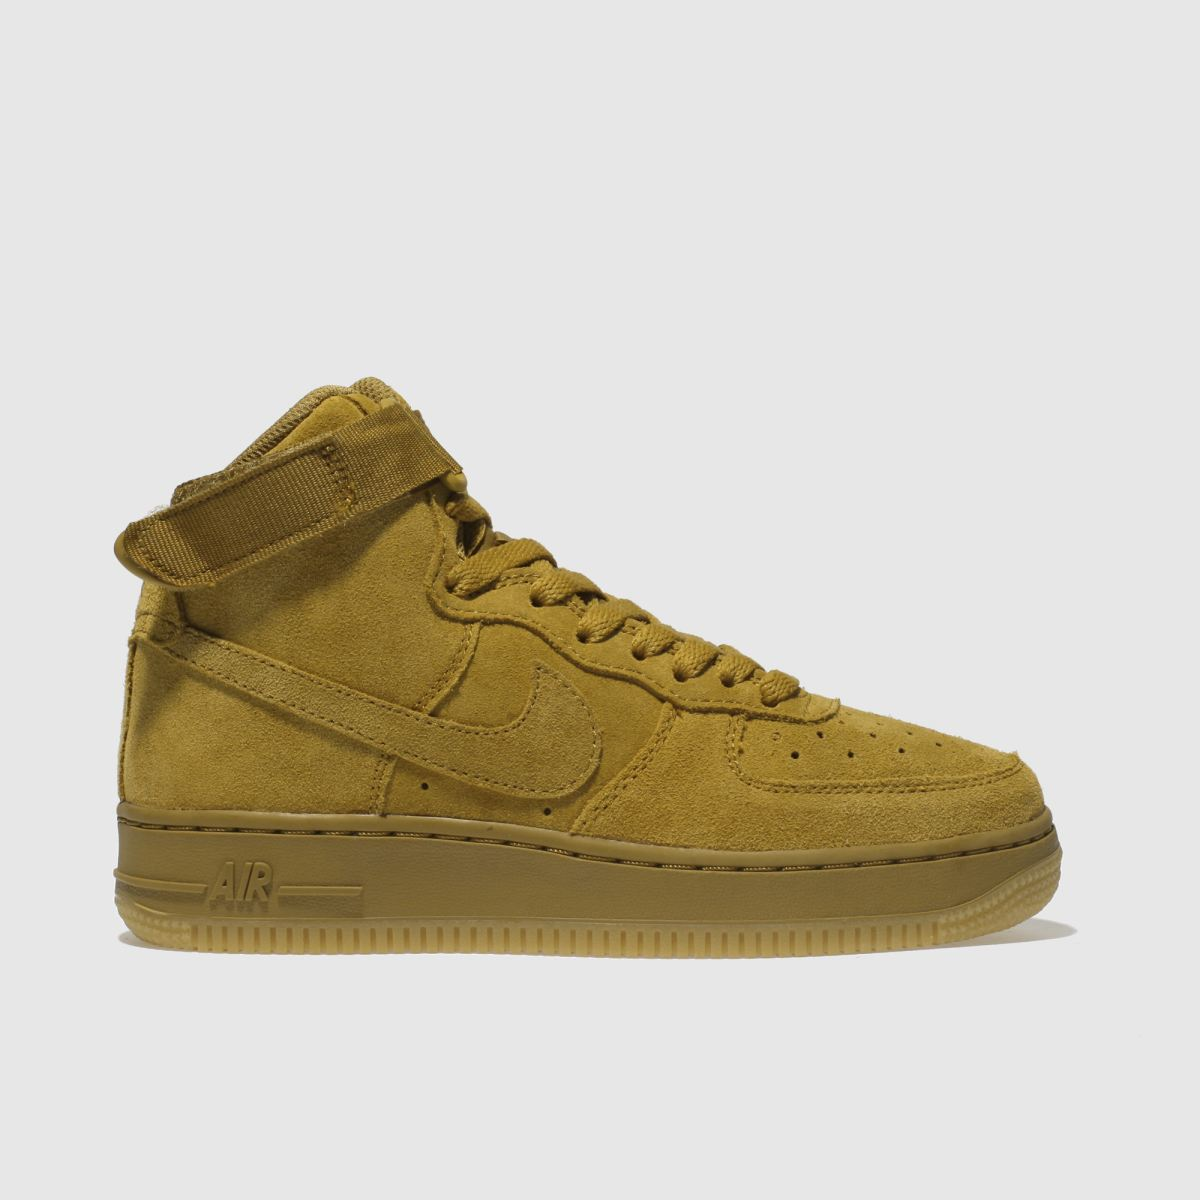 the best attitude c07e3 736d4 Nike Air Force 1 High LV8 Older Kids  Shoe - Brown   807617-701   FOOTY.COM